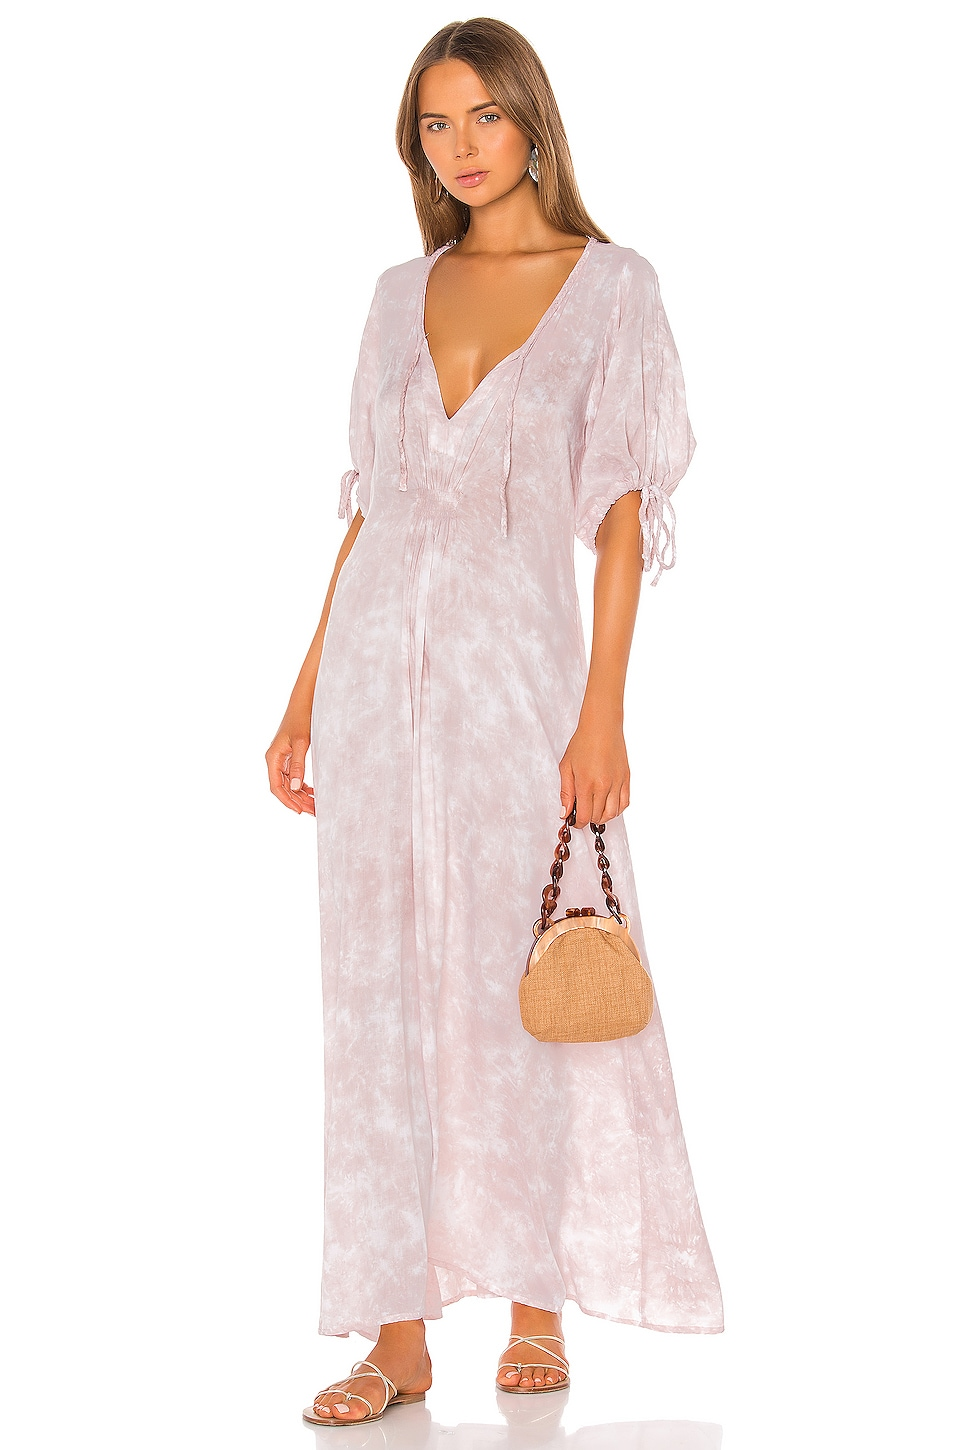 Tiare Hawaii Paroa Bay Dress in Mauve White